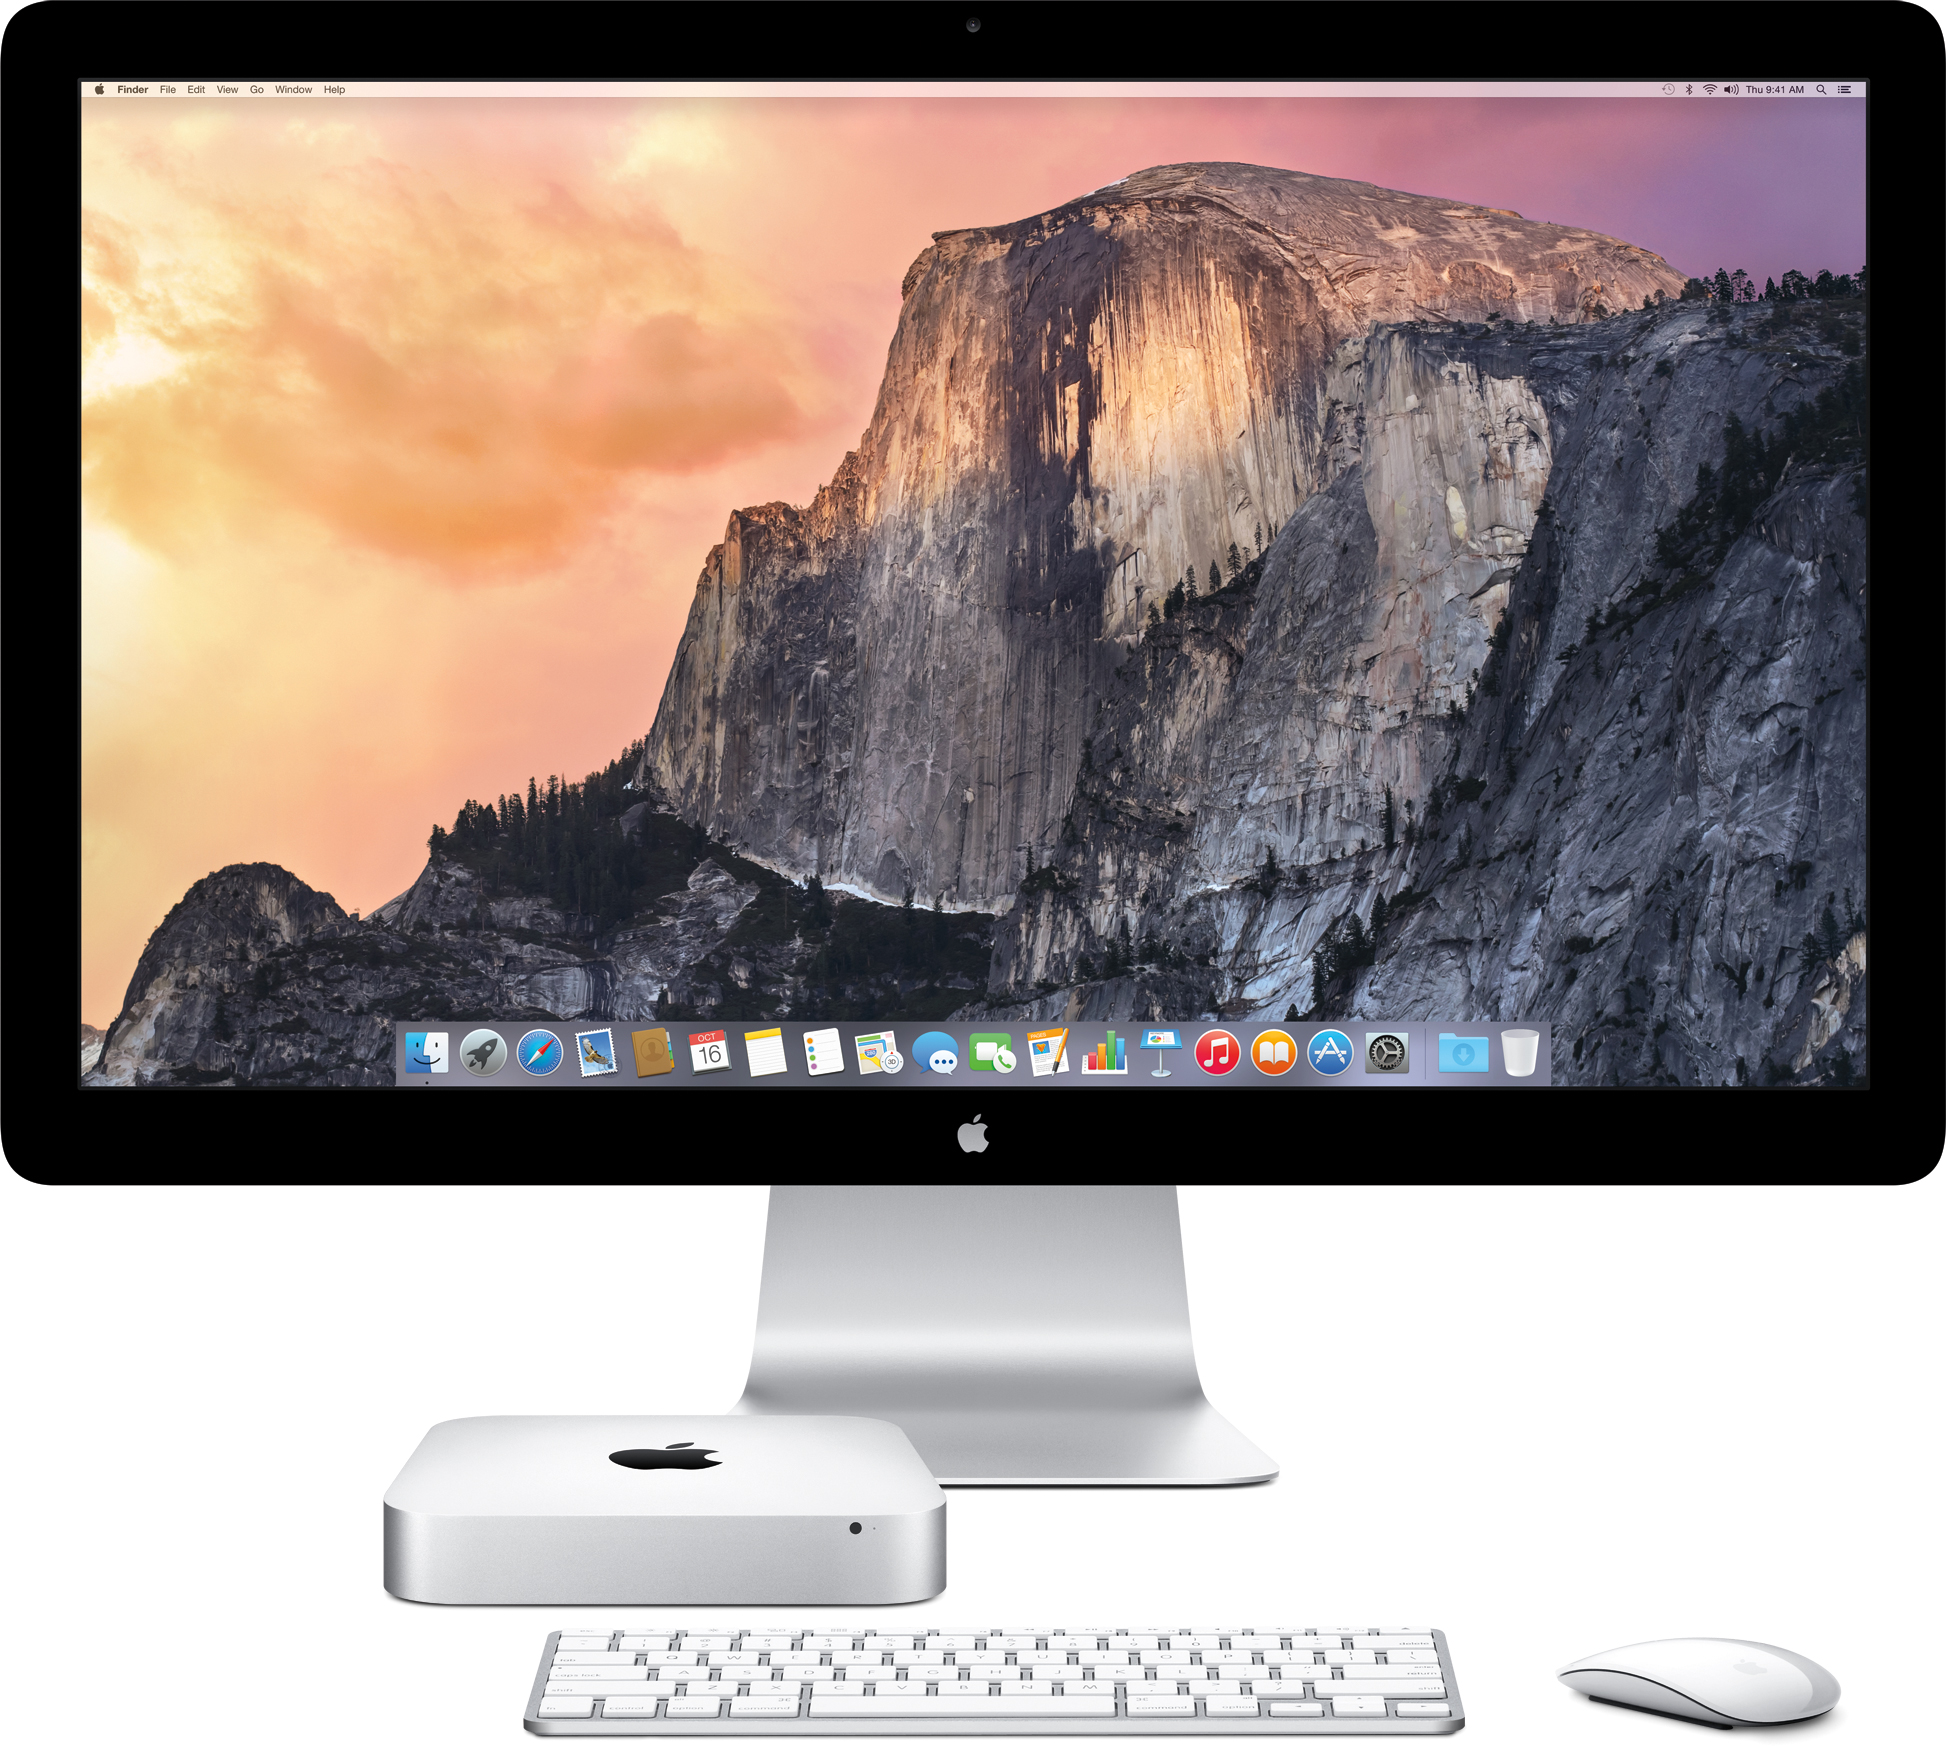 Novo Mac mini de frente com Thunderbolt Display, teclado e mouse